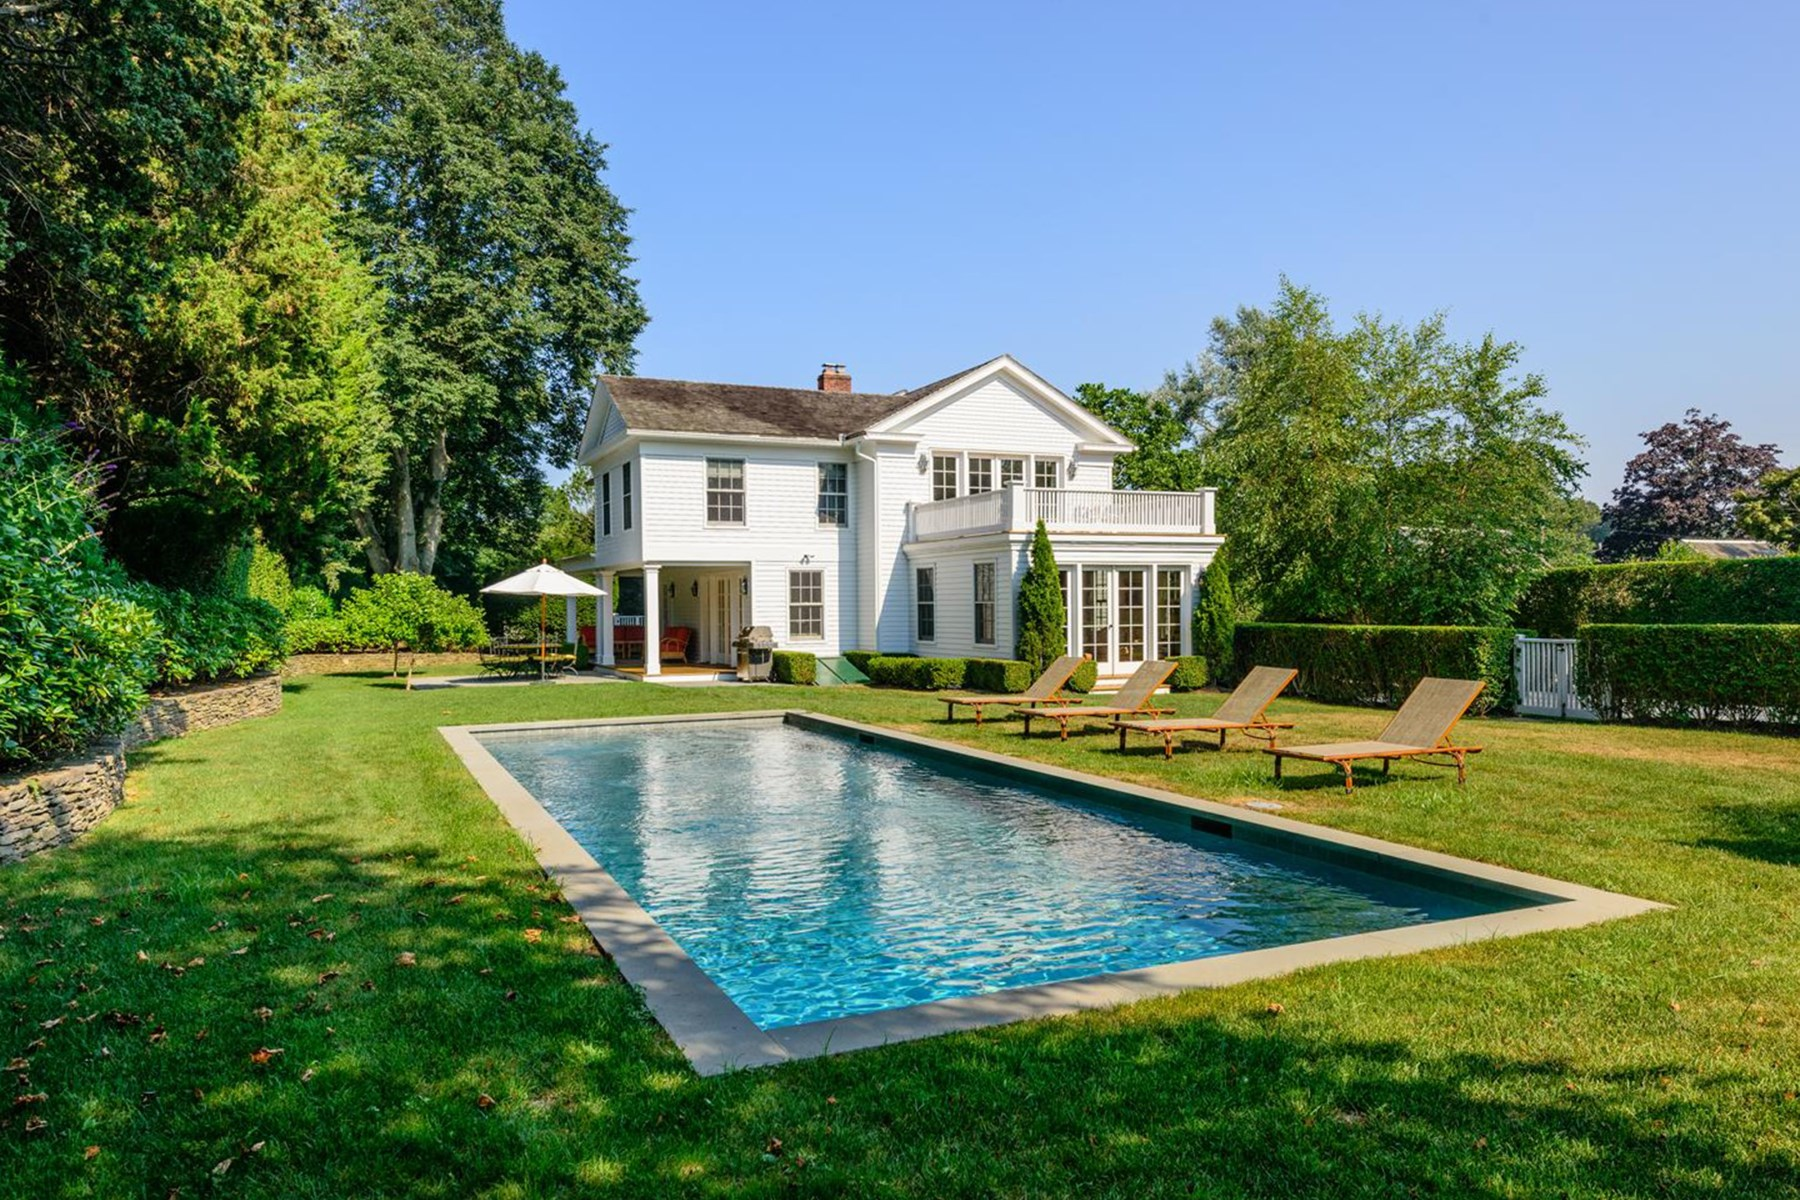 Single Family Home for Rent at Magnificent Historic Greek Revival, Bridgehampton South, Bridgehampton, New York, 11932 United States